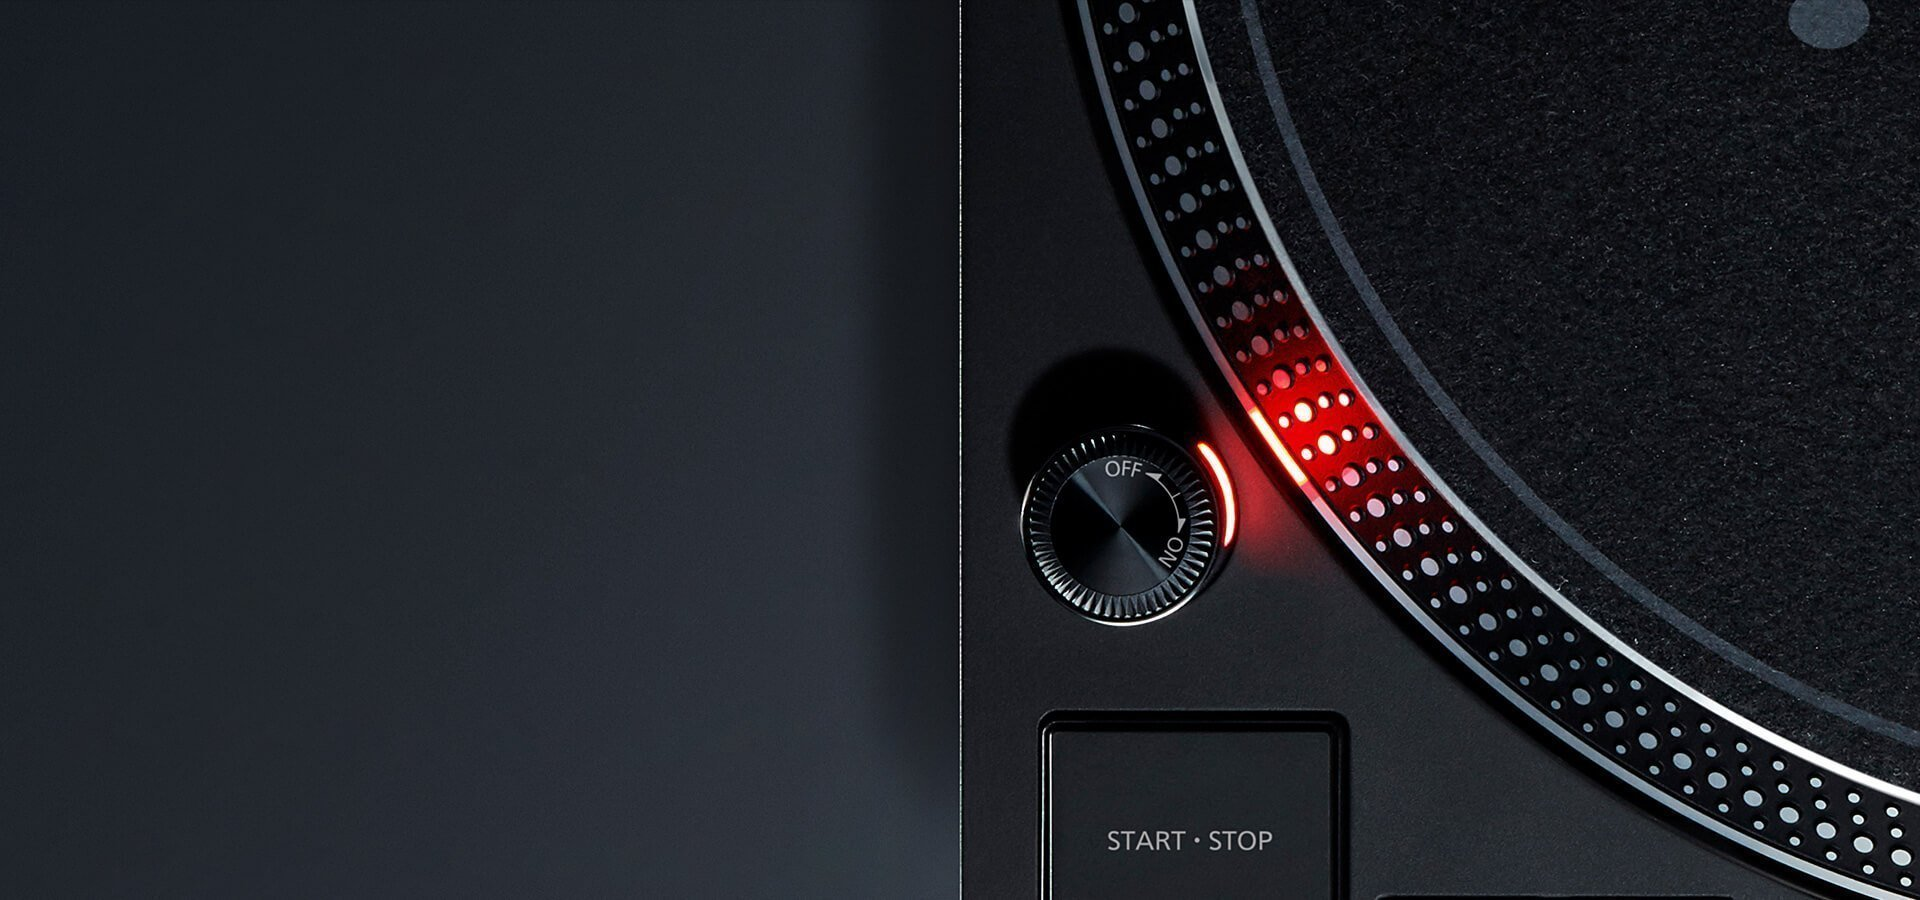 NAILED IT: Here's the official word on the Technics SL-1210